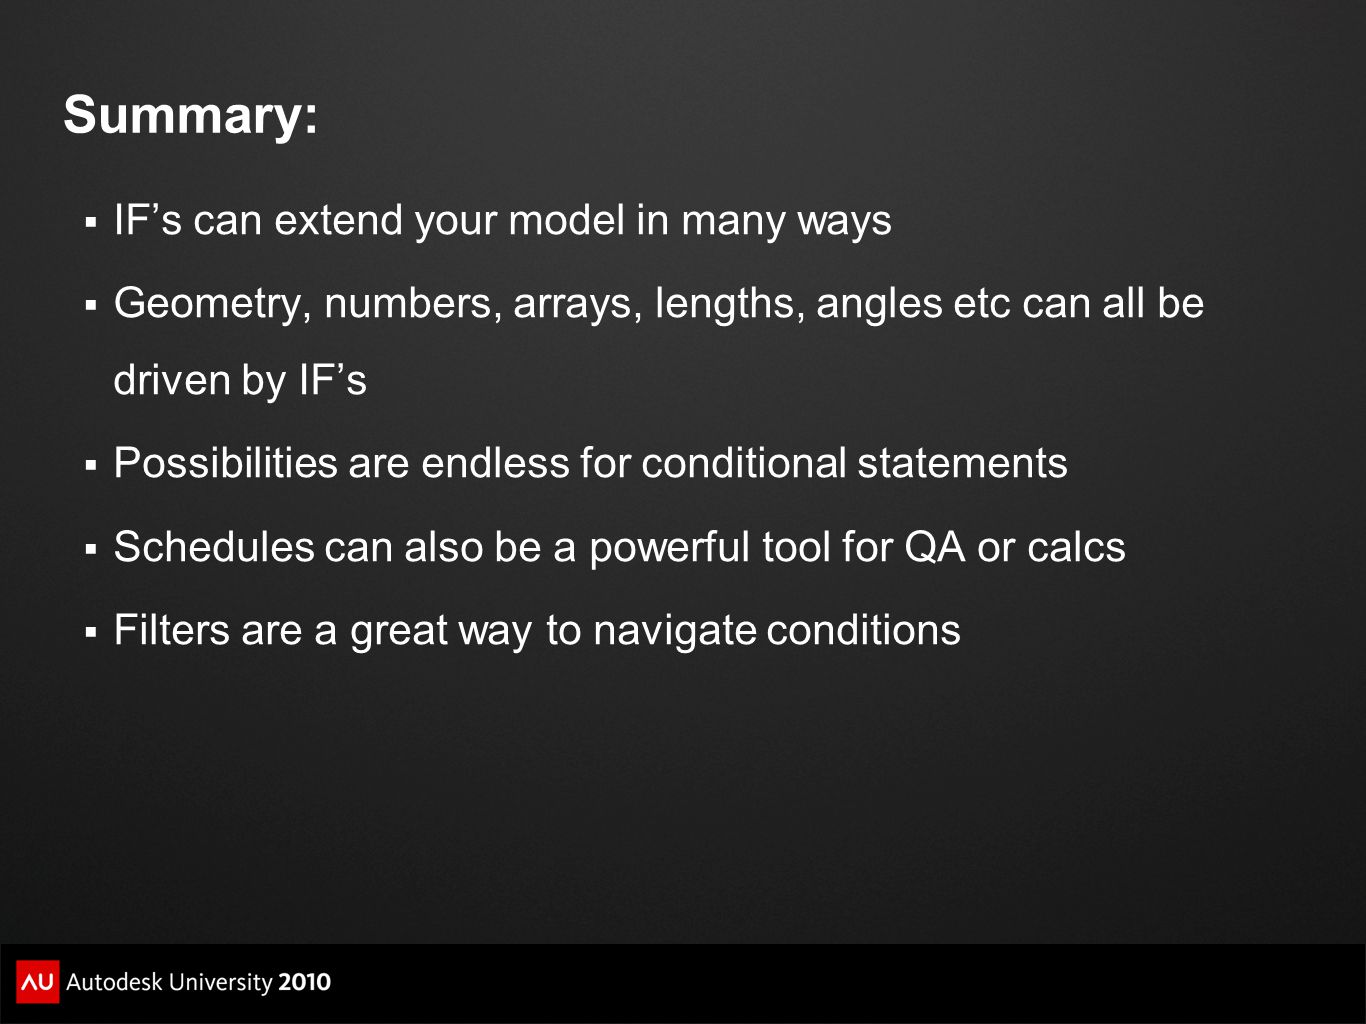 Summary: IF's can extend your model in many ways